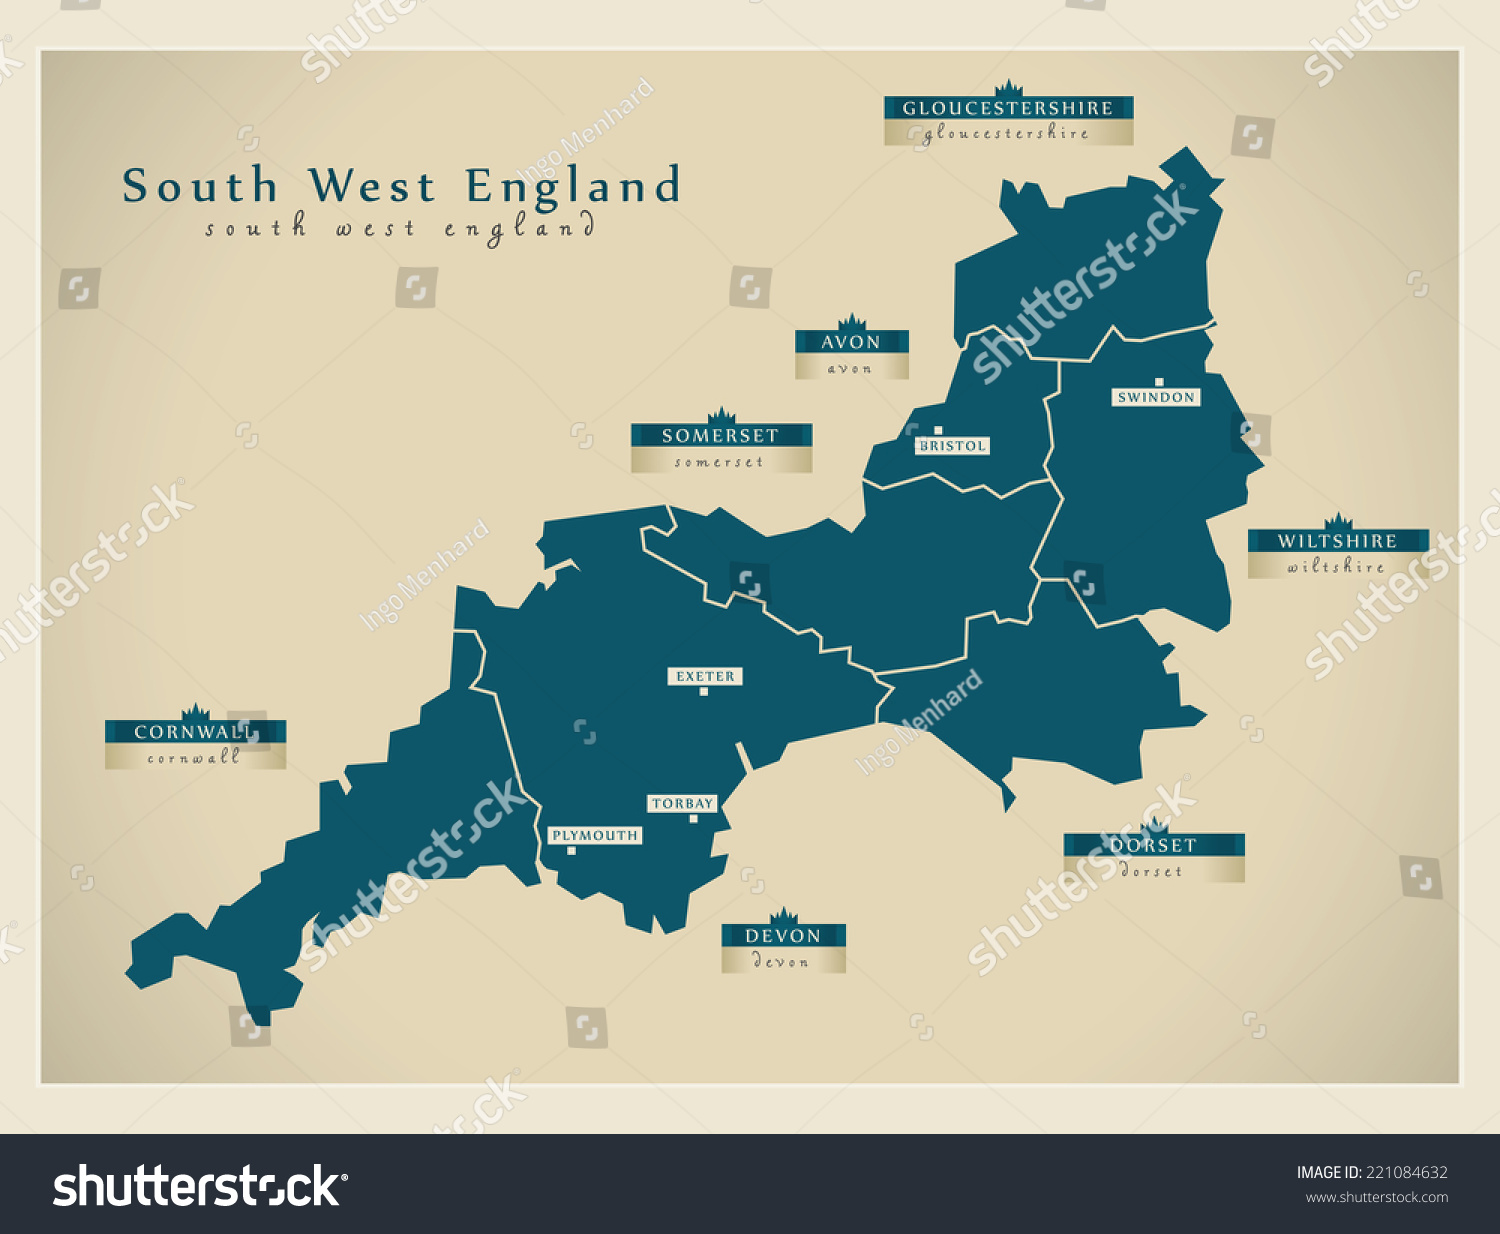 Dating south west england